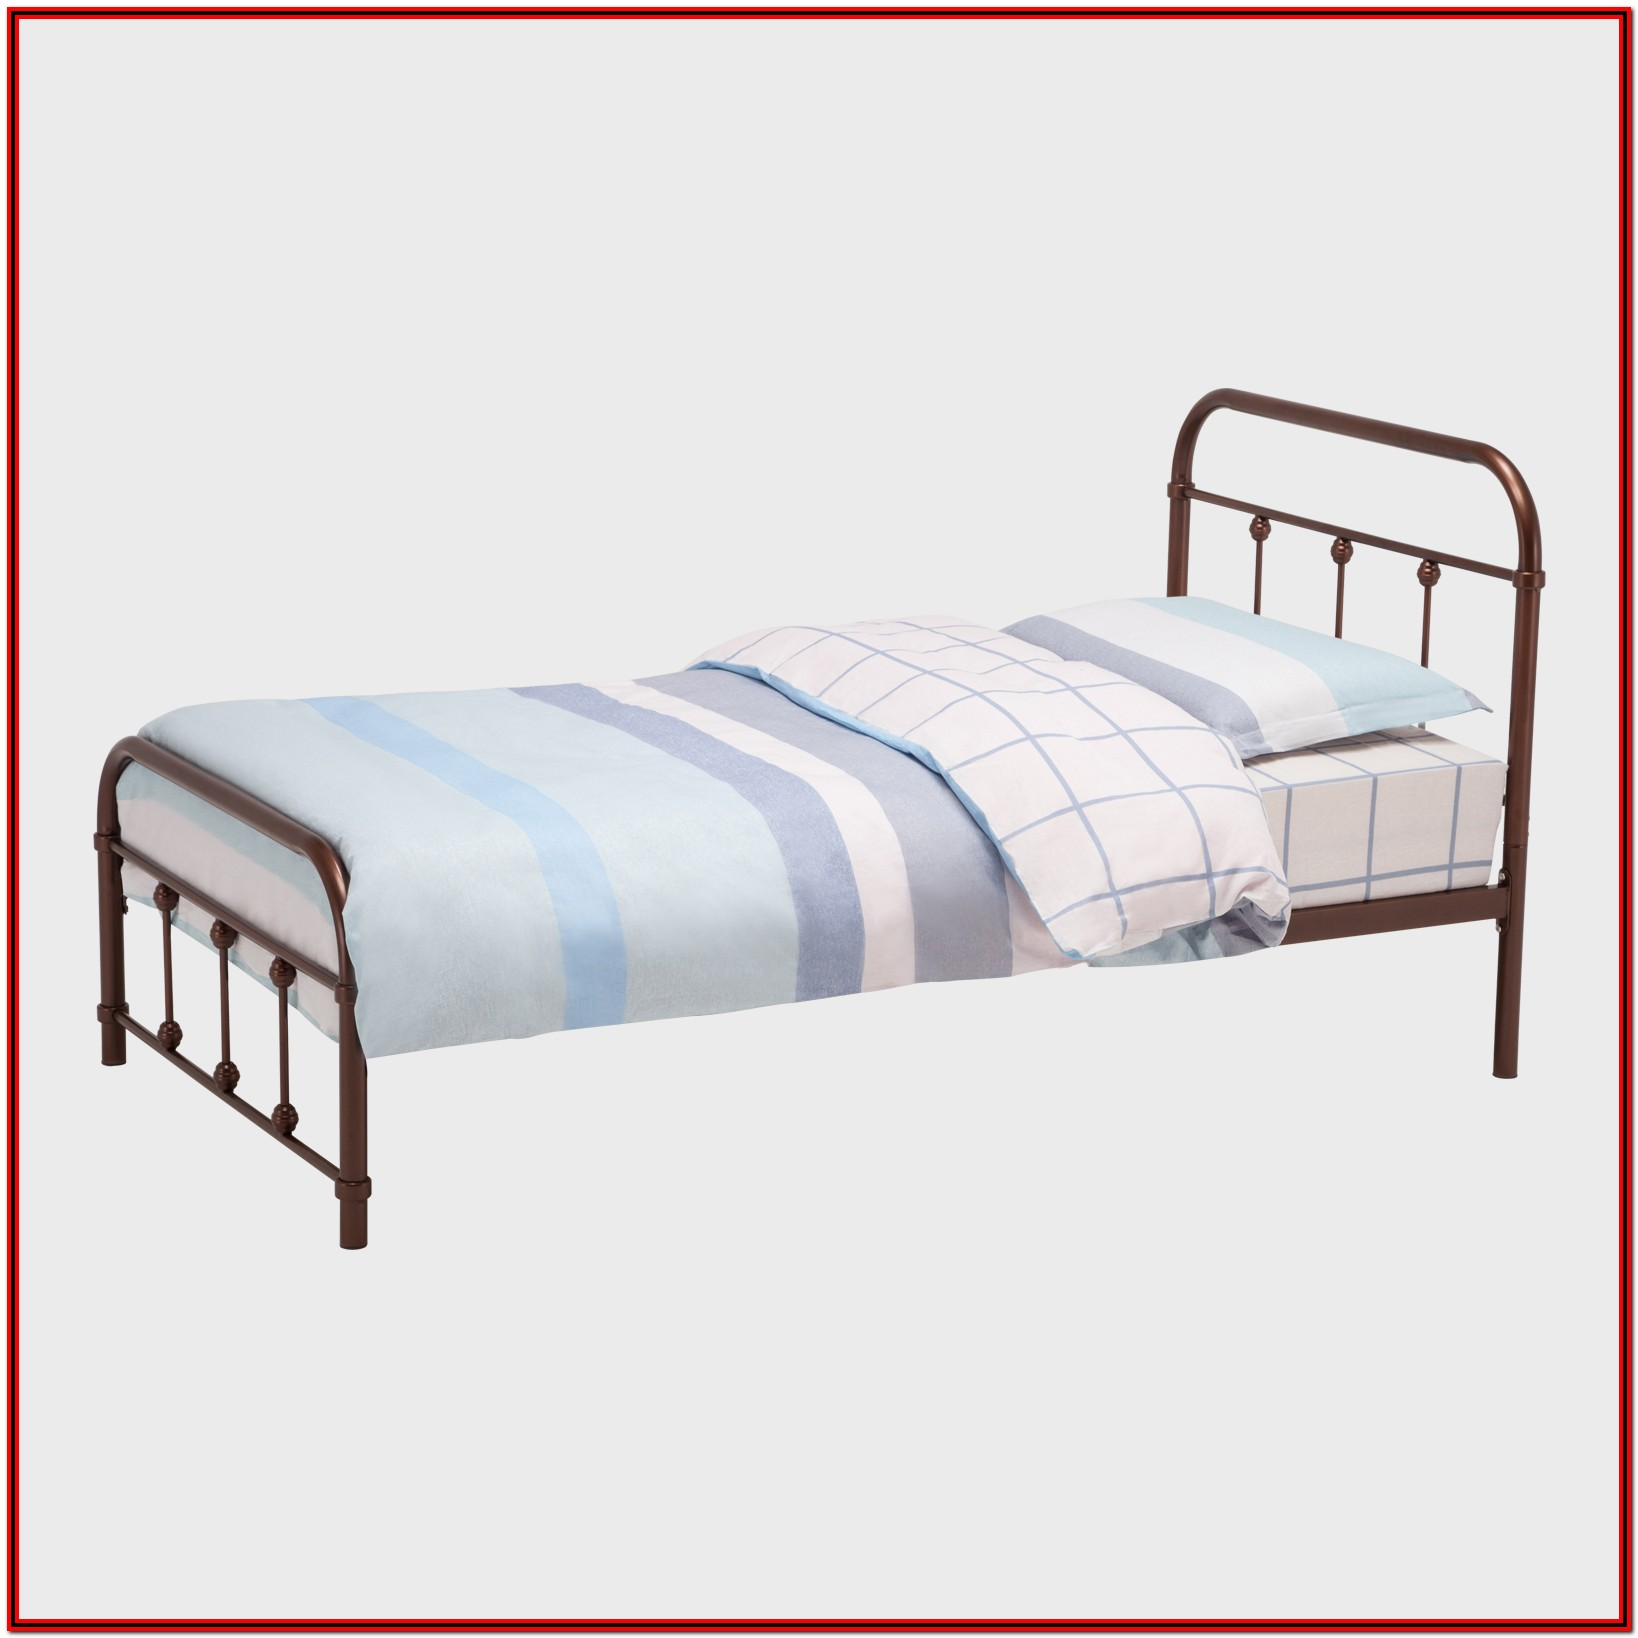 Platform Bed Frame With Headboard Full